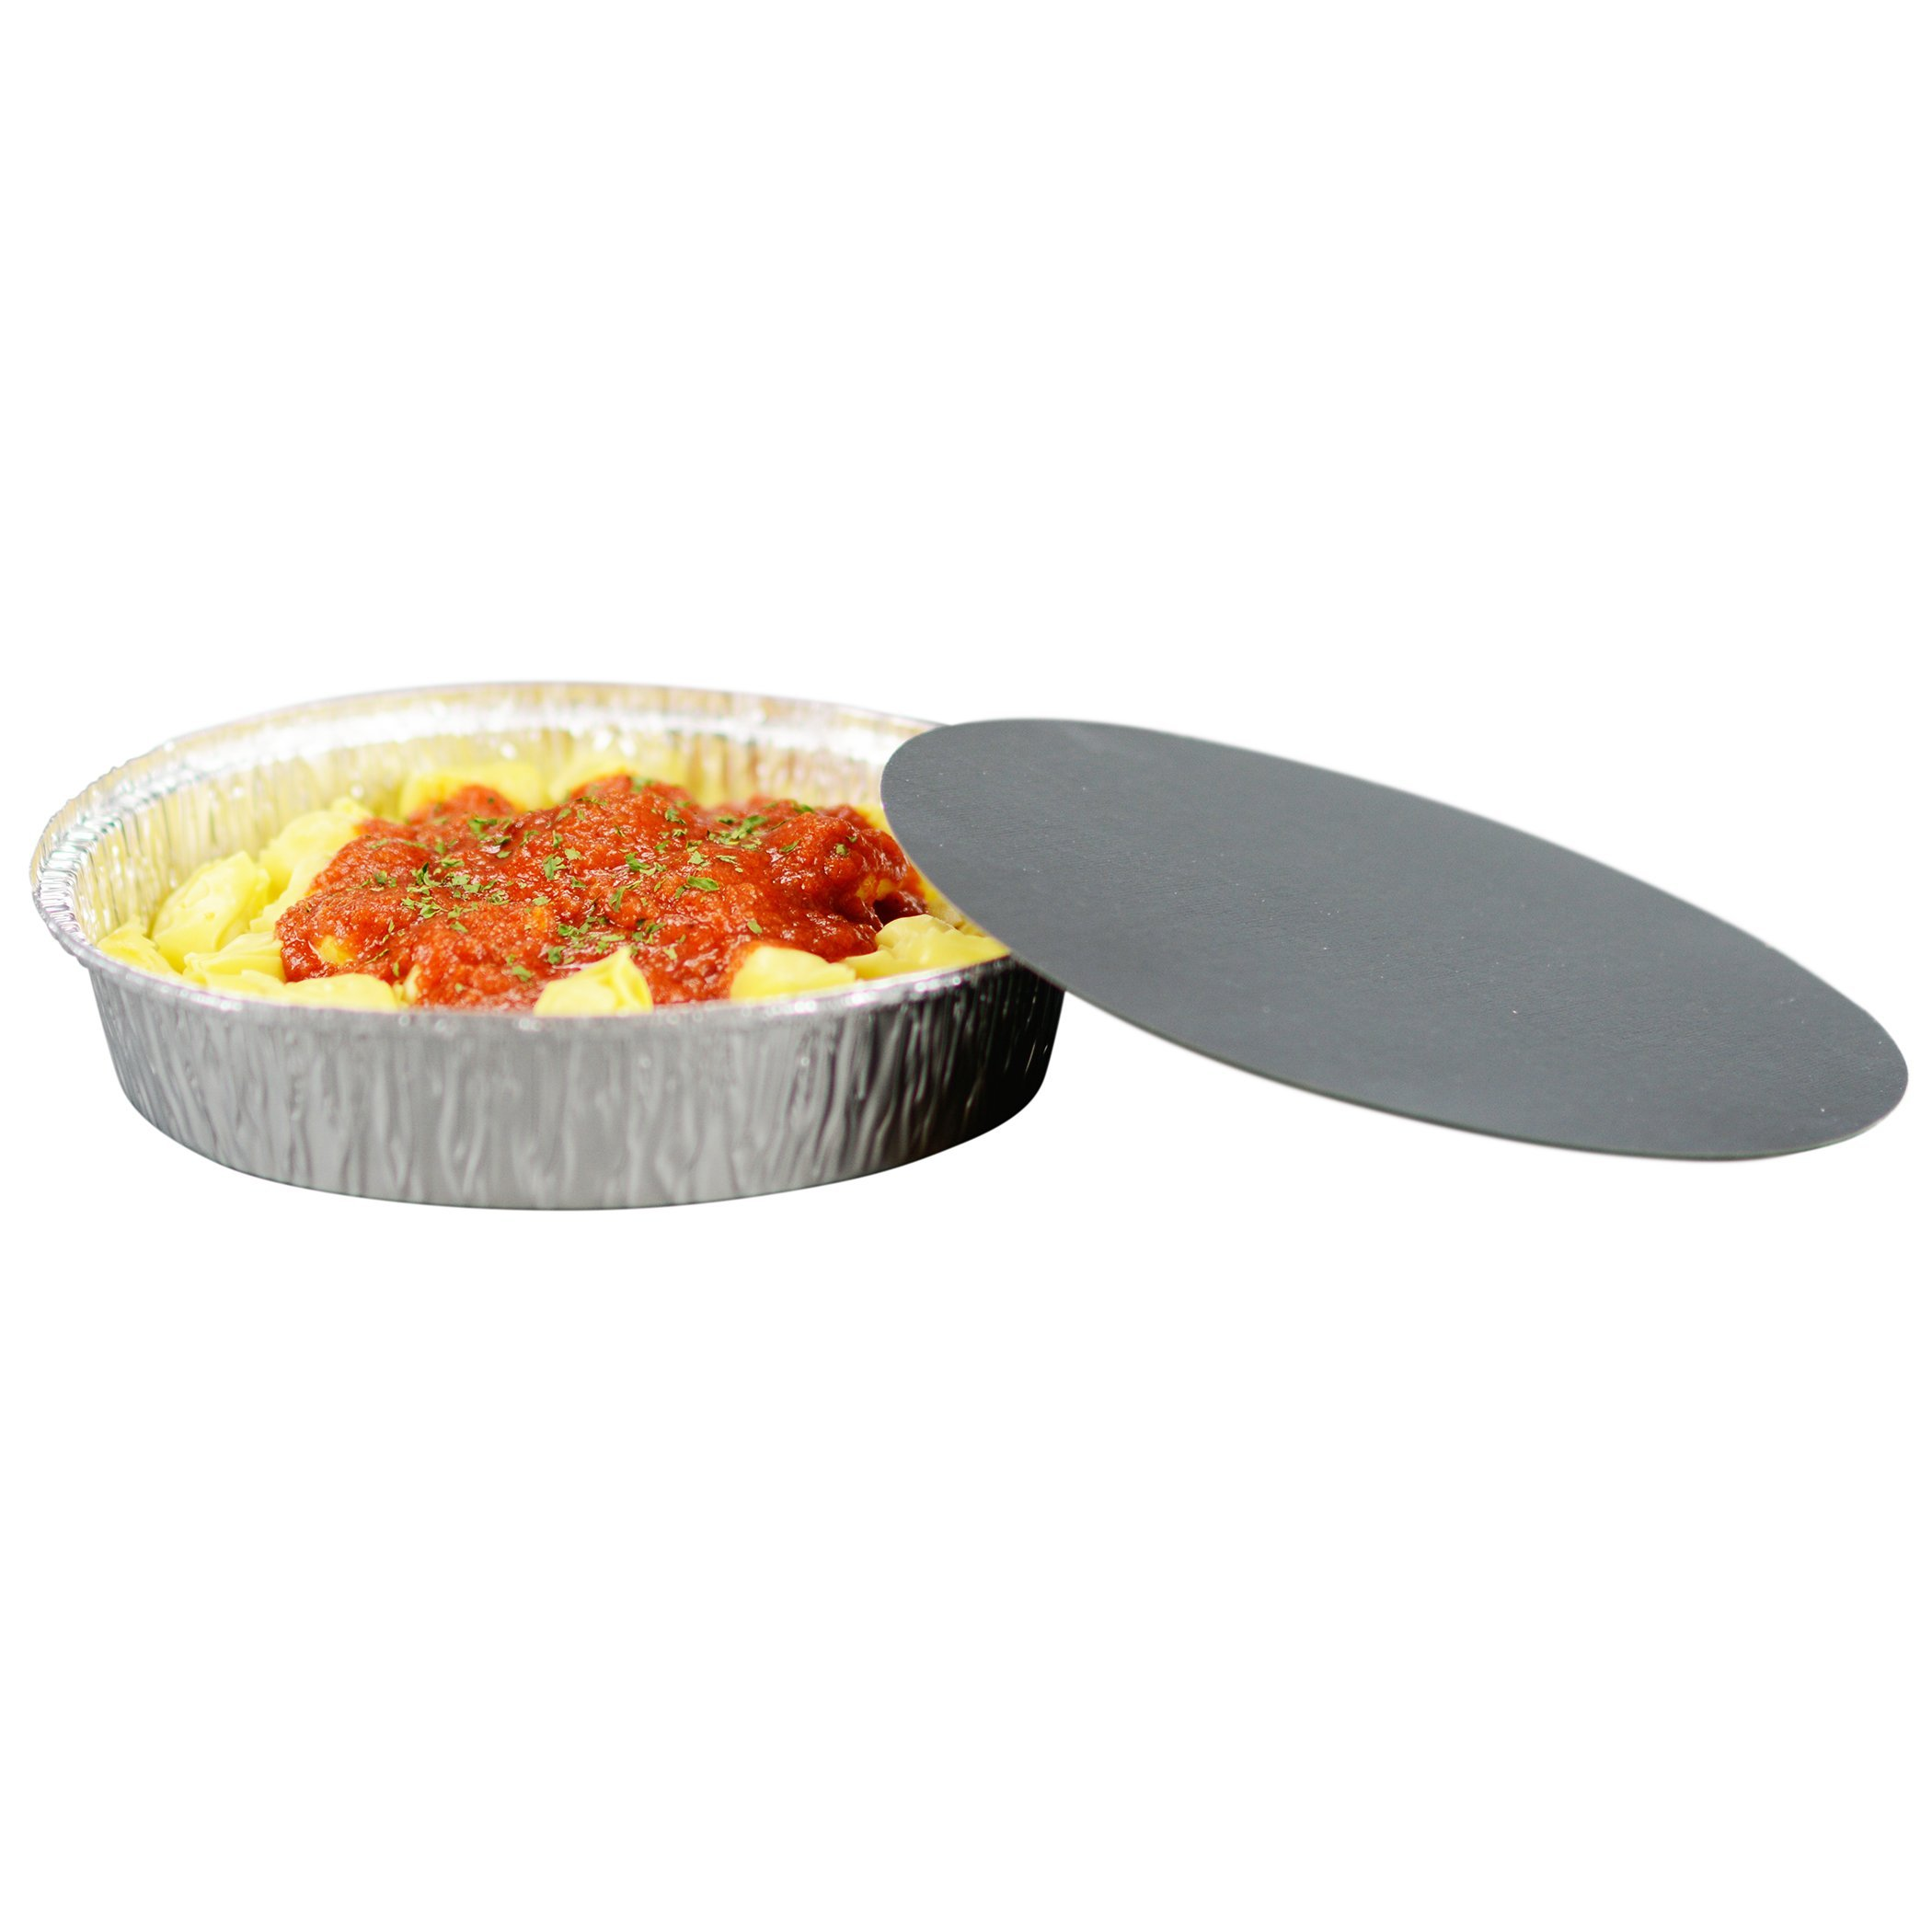 Simply Deliver 9-Inch Round Disposable Take-Out Pan, 30 Gauge Aluminum, 500-Count by Simply Deliver (Image #6)